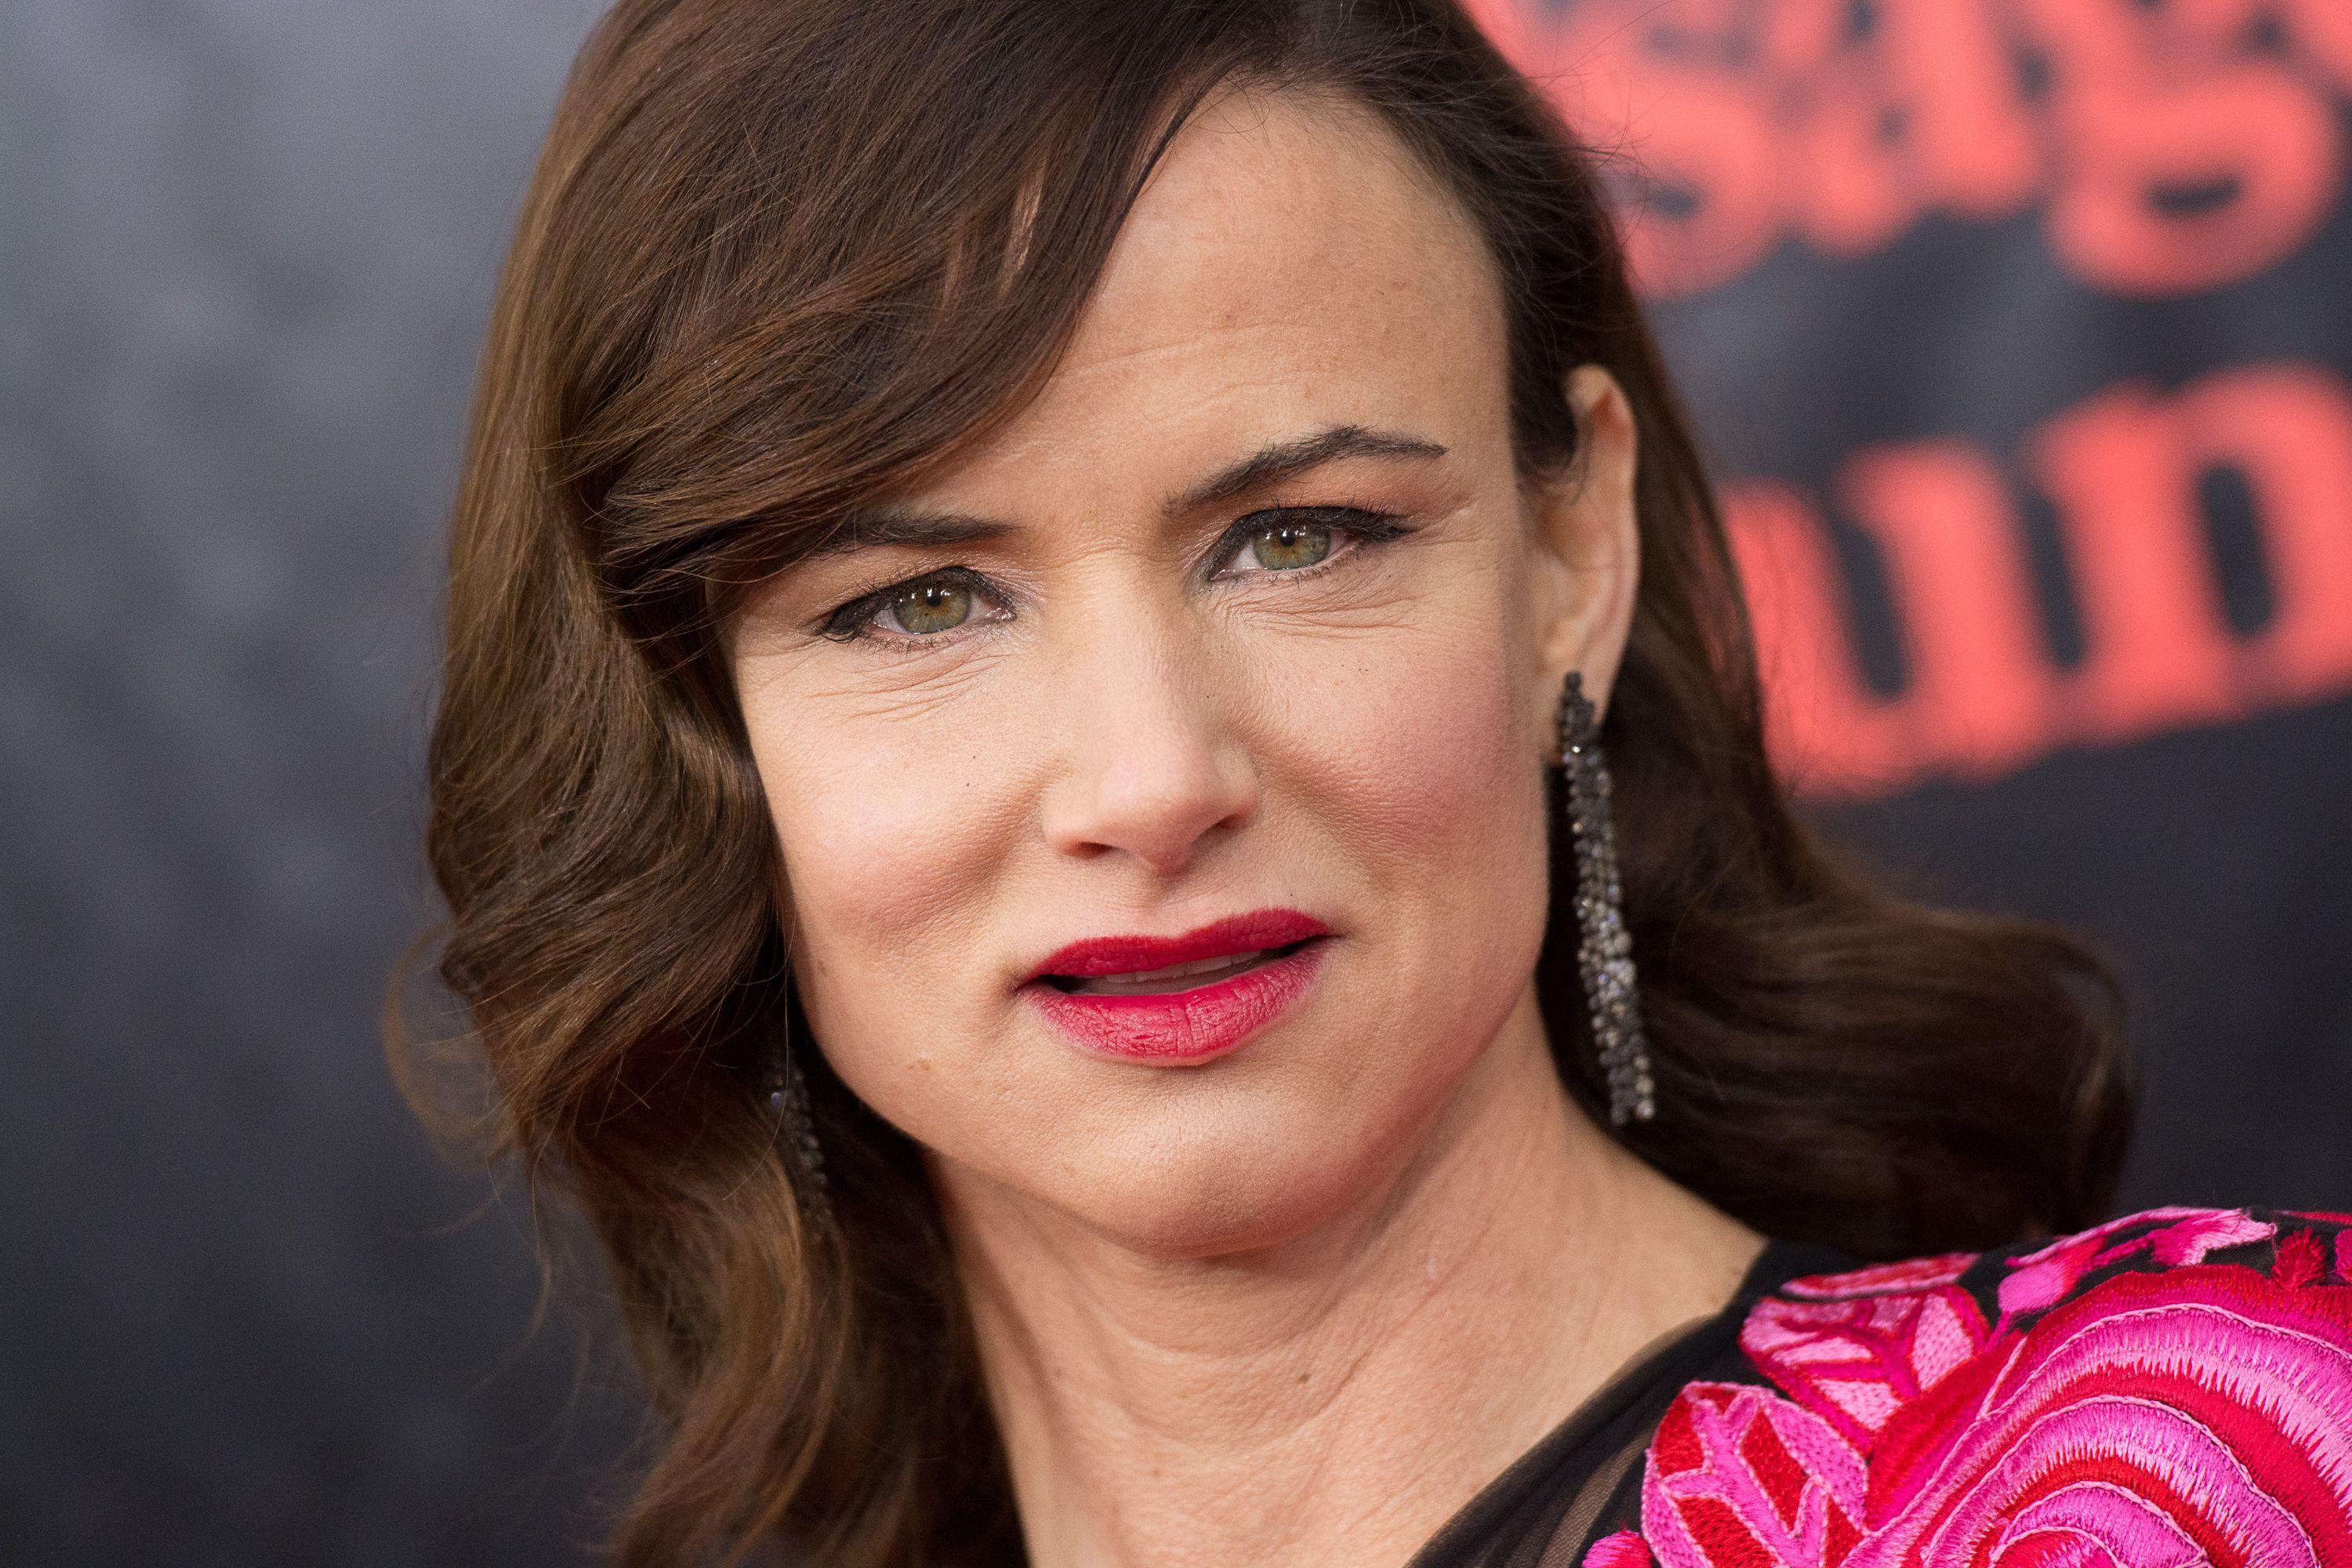 Juliette Lewis Free HD Wallpapers Image Backgrounds